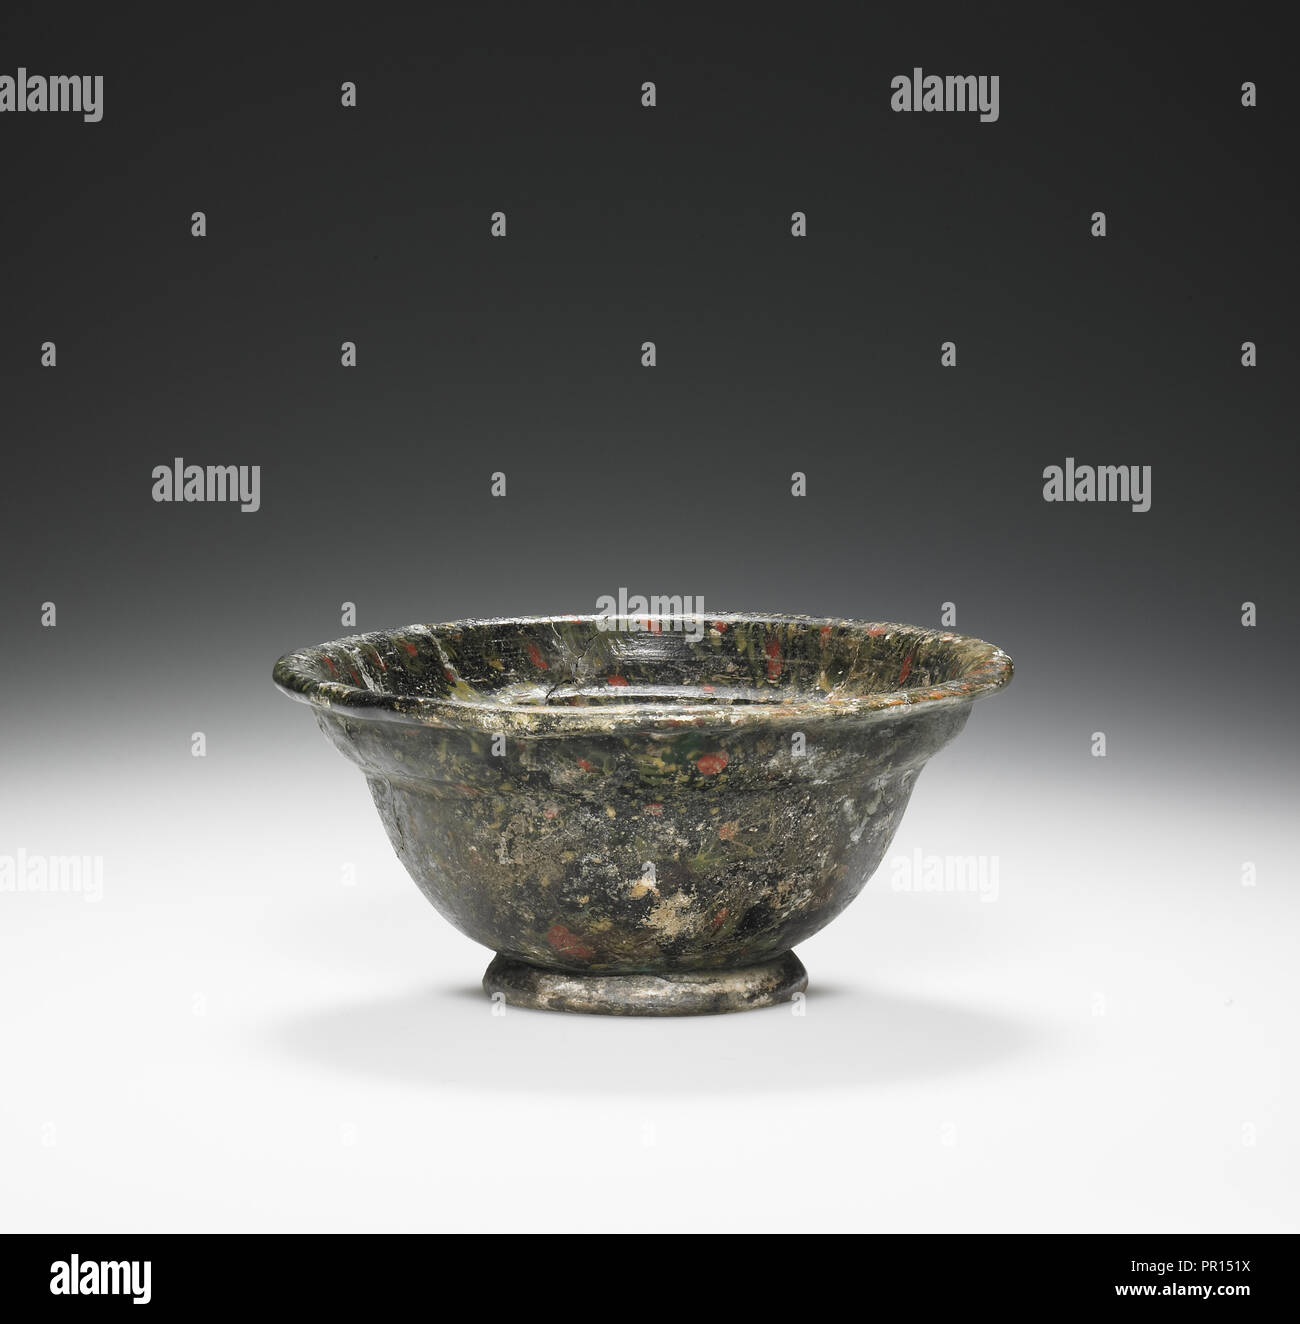 Mosiac Bowl; Eastern Mediterranean; end of 1st century B.C.–1st century A.D; Glass; 4 × 9 cm, 1 9,16 × 3 9,16 in - Stock Image